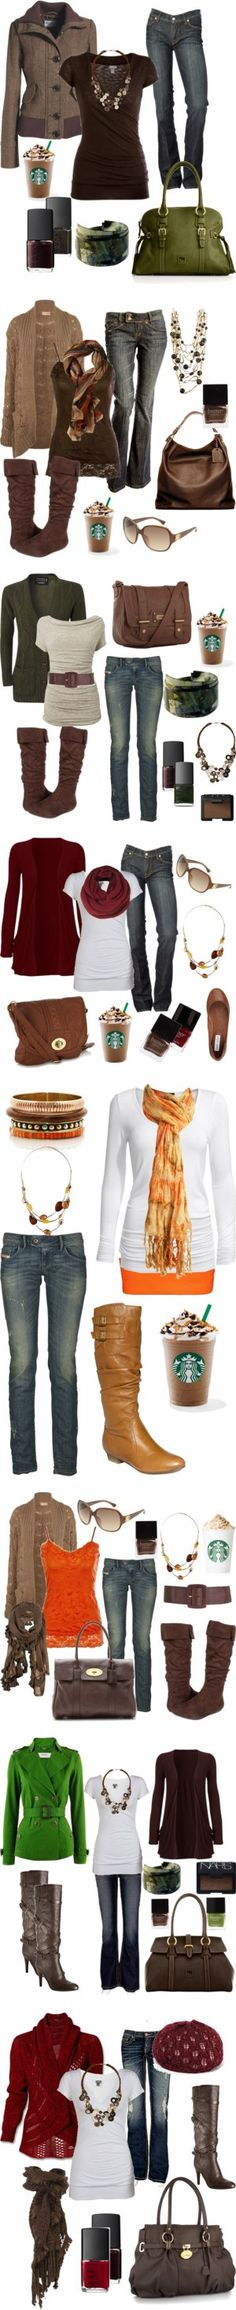 """Fall Outfits!"" by chelseawate on Polyvore"